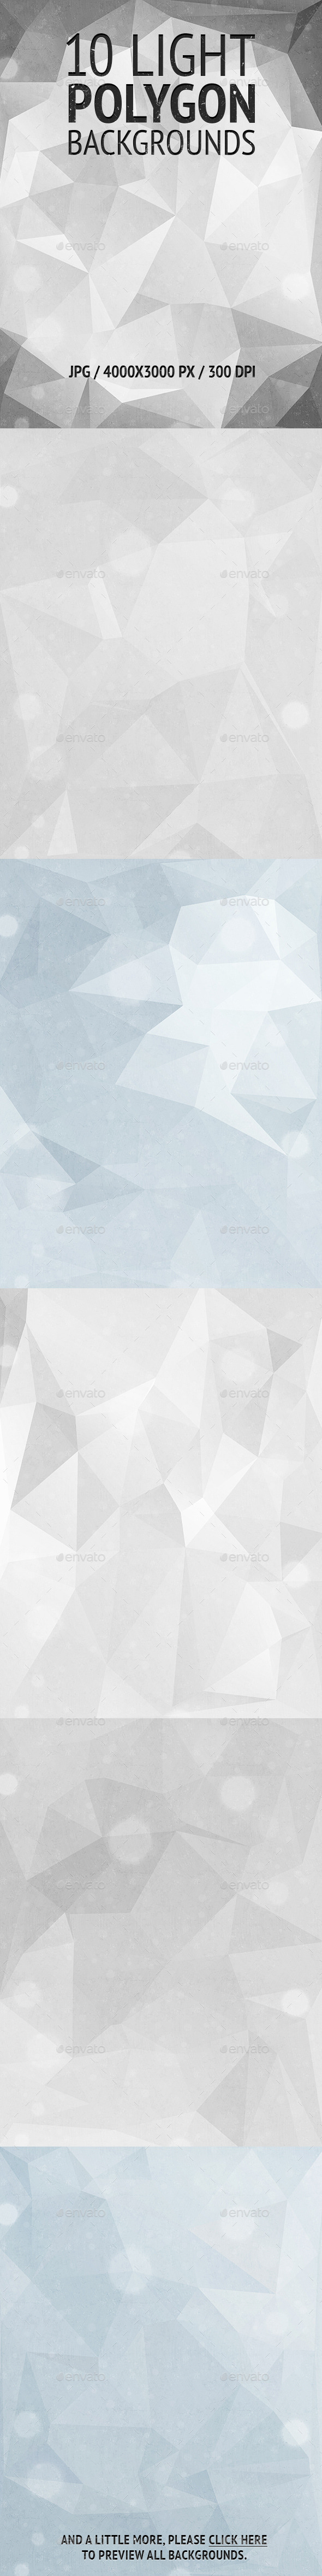 10 Light Polygon Backgrounds